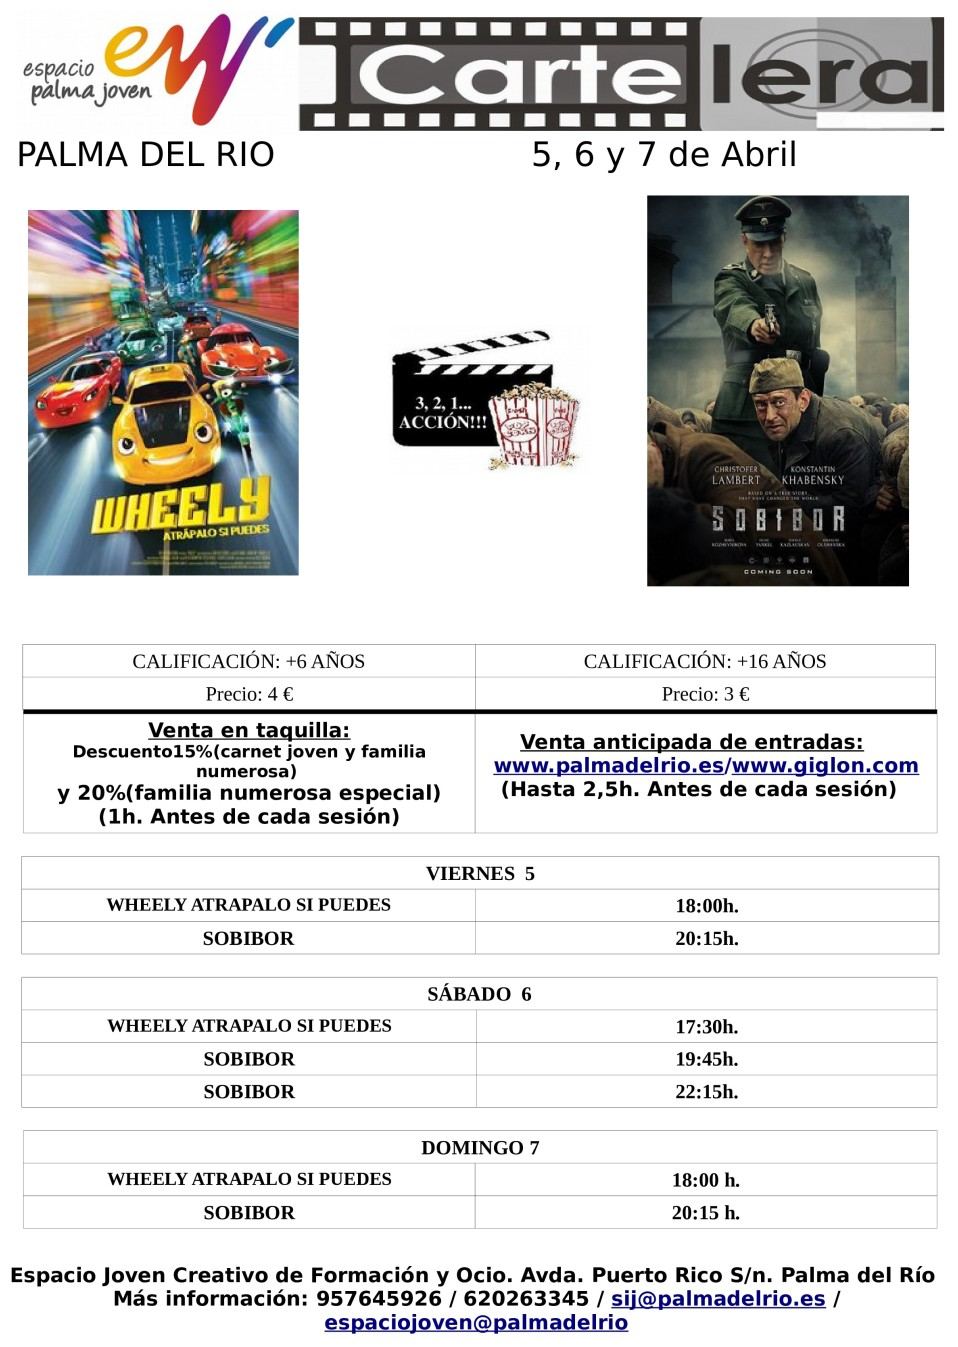 https://www.palmadelrio.es/sites/default/files/cine_5.6.7_abril_2019.jpg